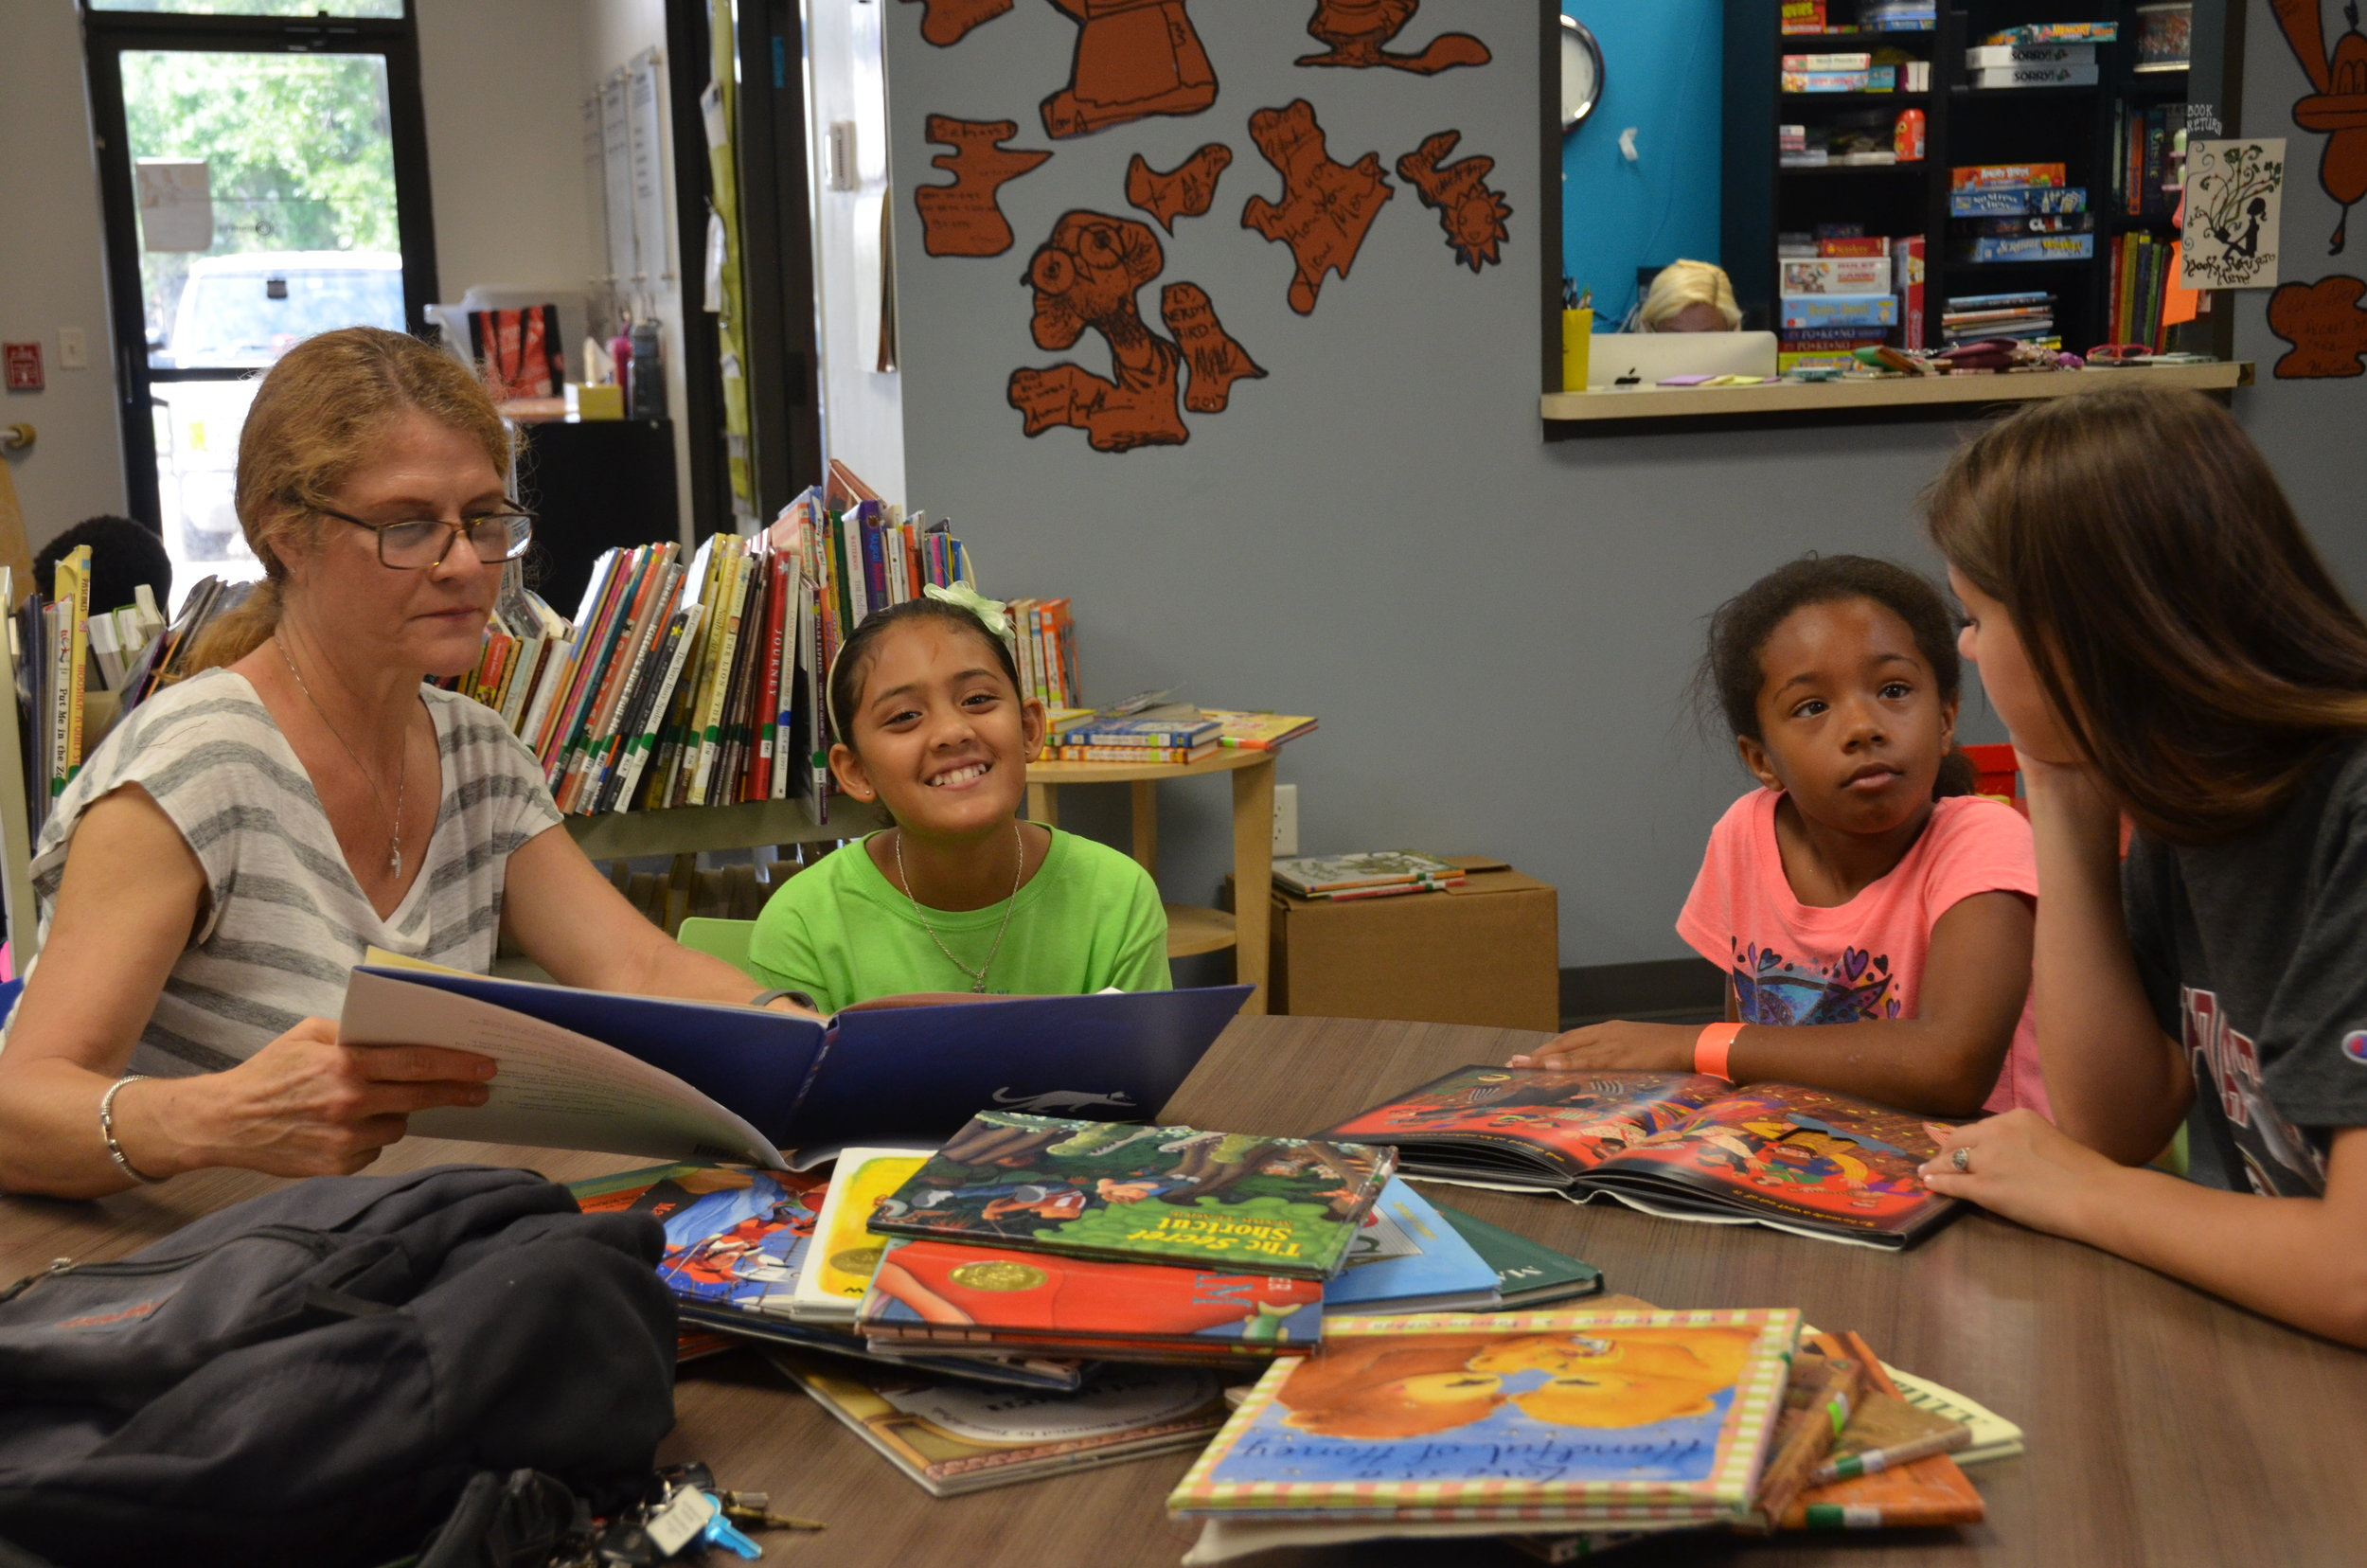 FPR Arts & Education - A&E Programs create opportunities for children and youth learn a variety of arts, master foundational academic skills, and develop a love of learning. Click here for details.